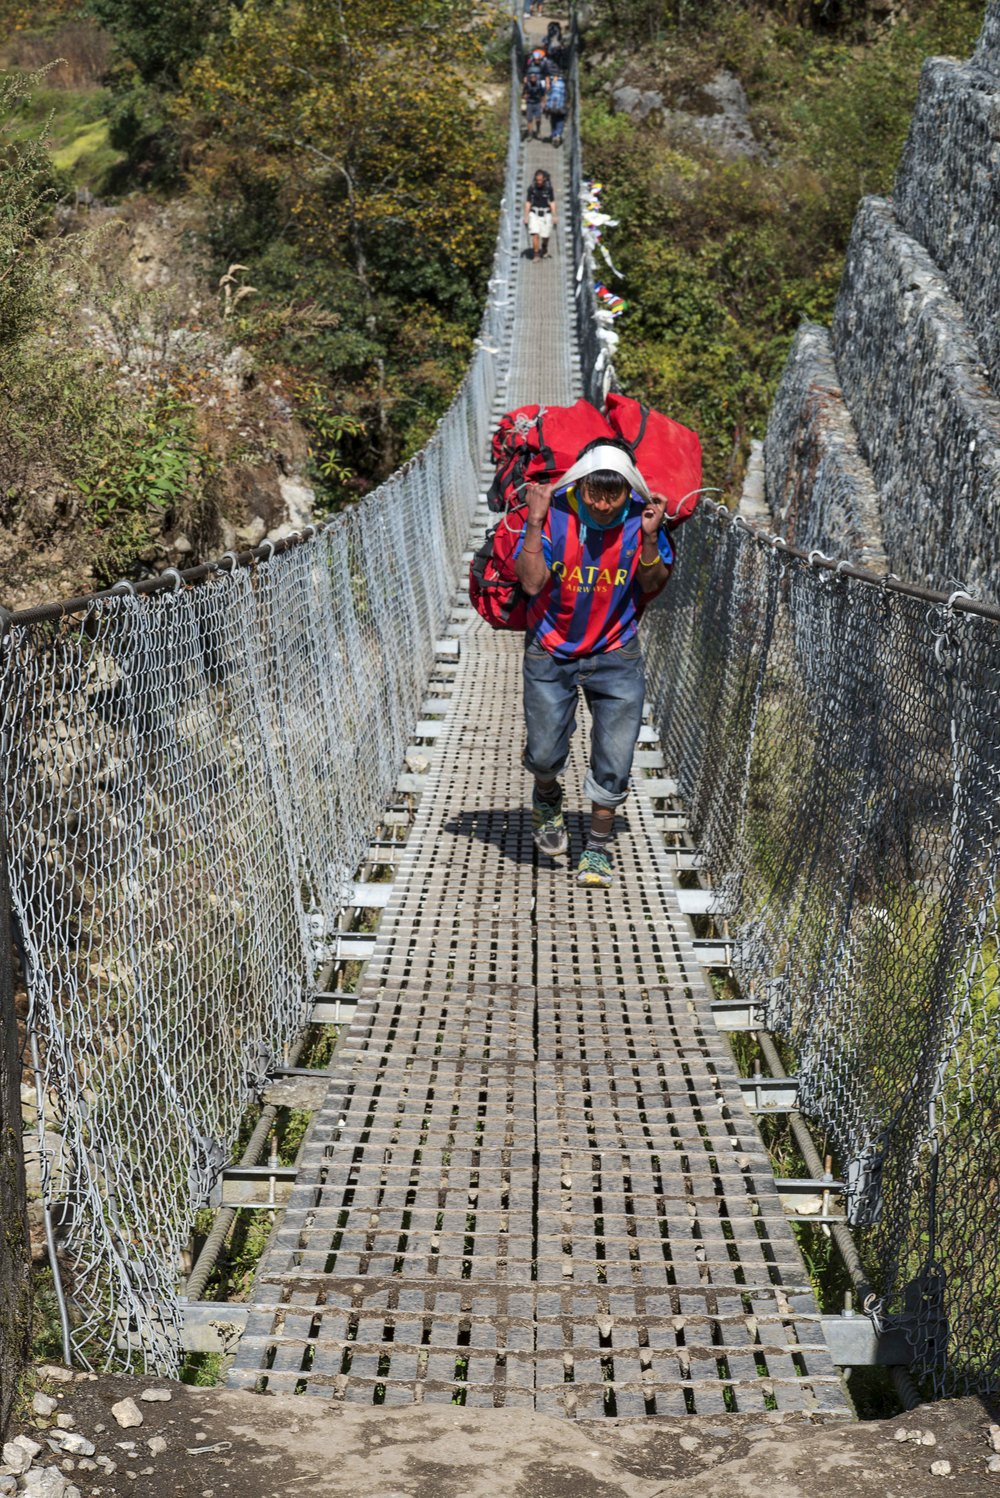 Last suspension bridge